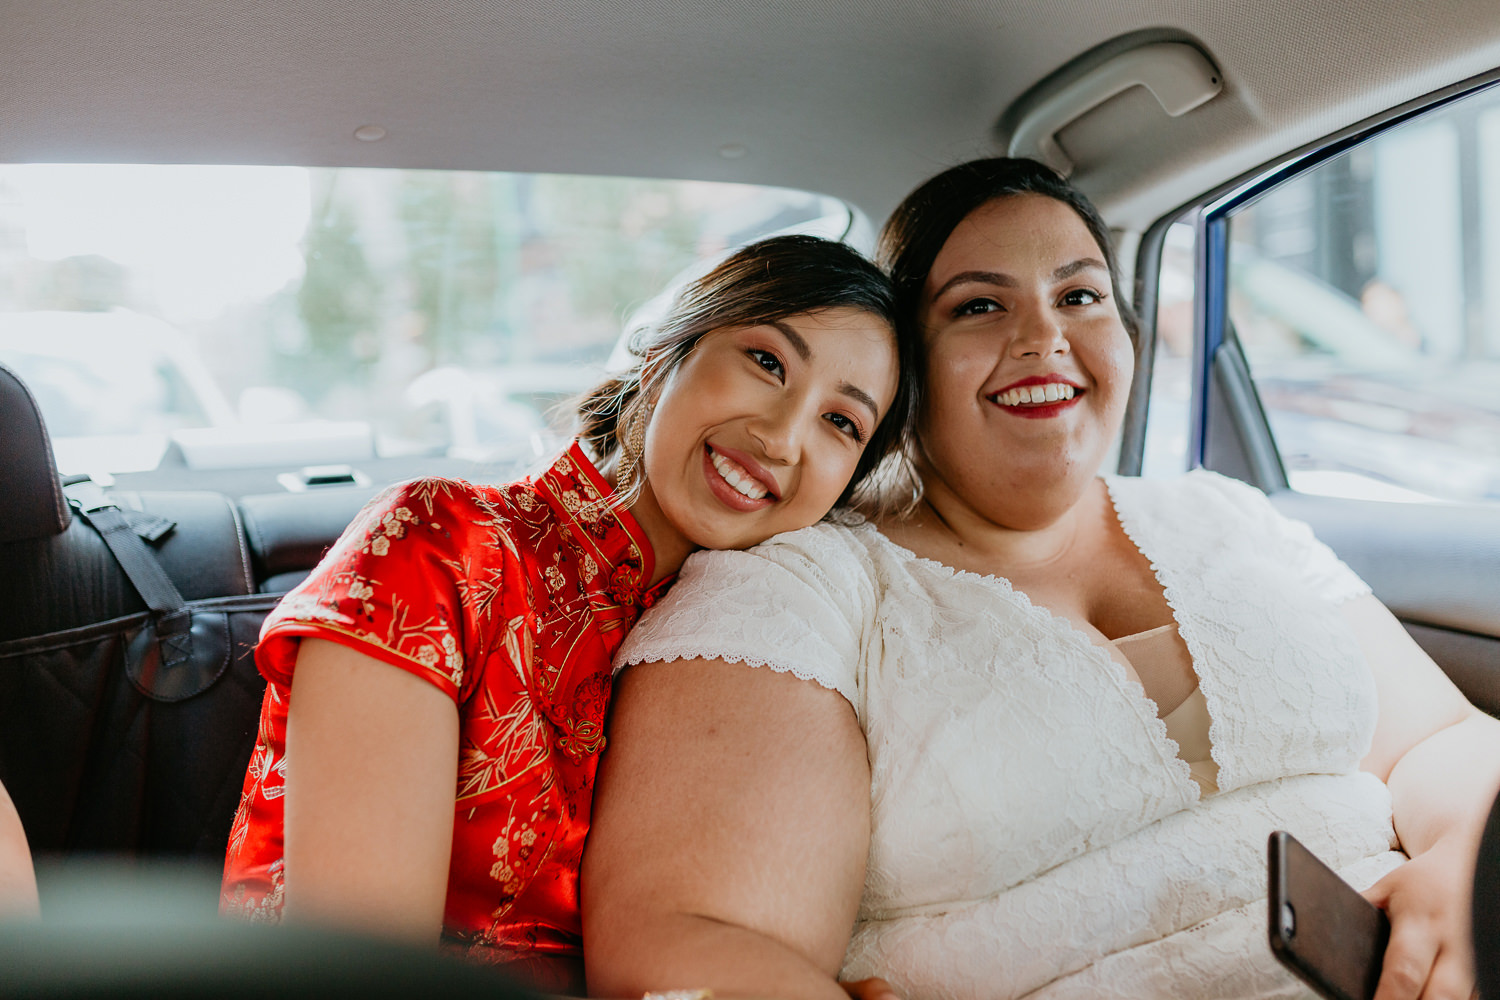 two brides in the back of the uber, one with her head on the others shoulder